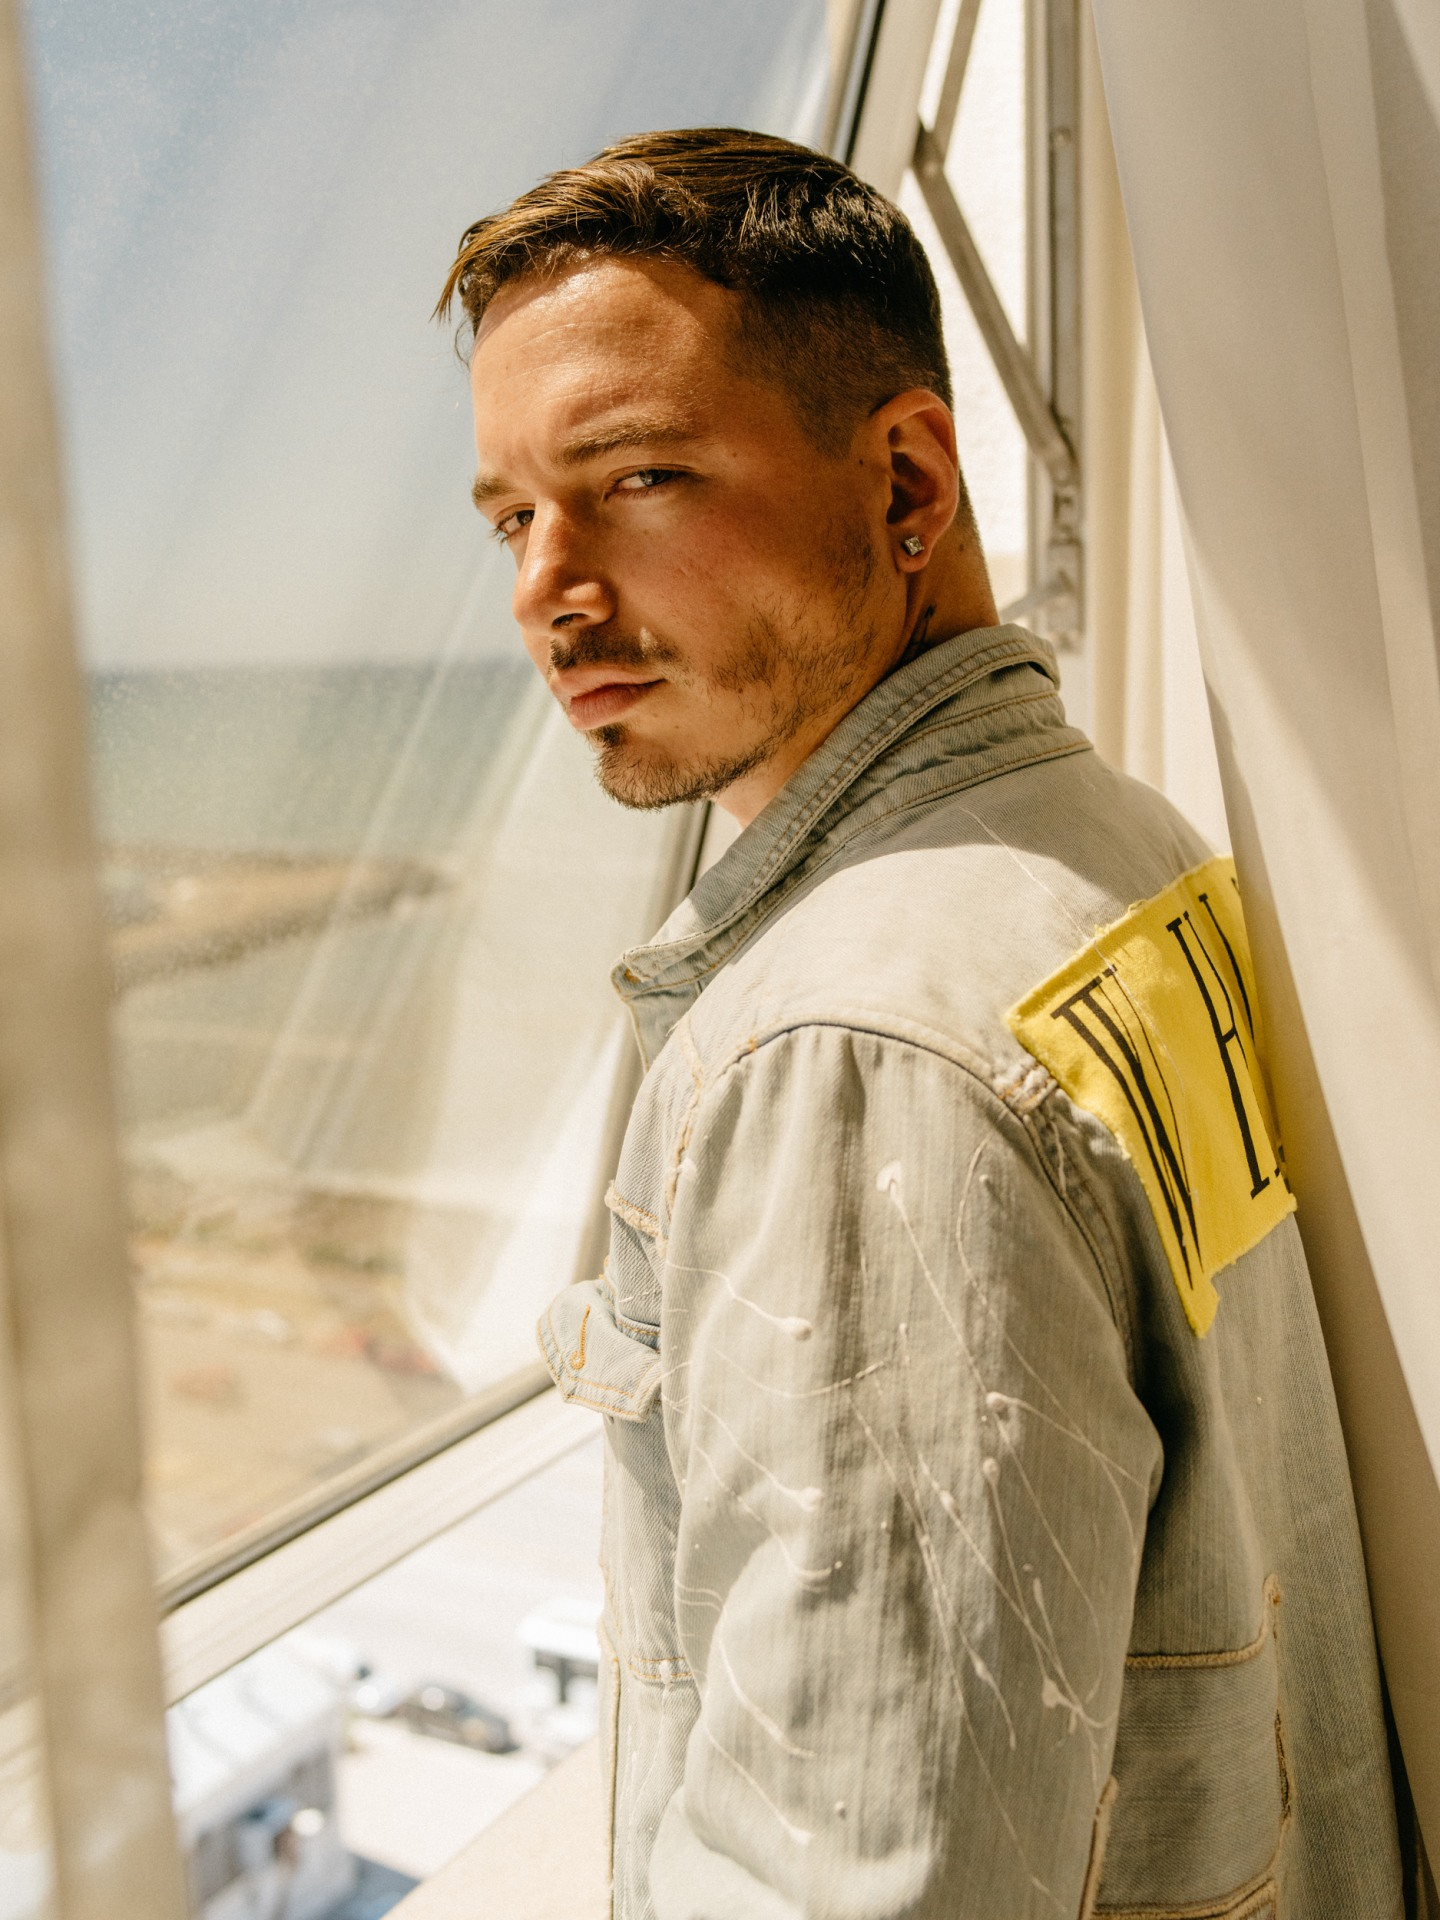 For J Balvin Dignity Is Not Negotiable The Fader